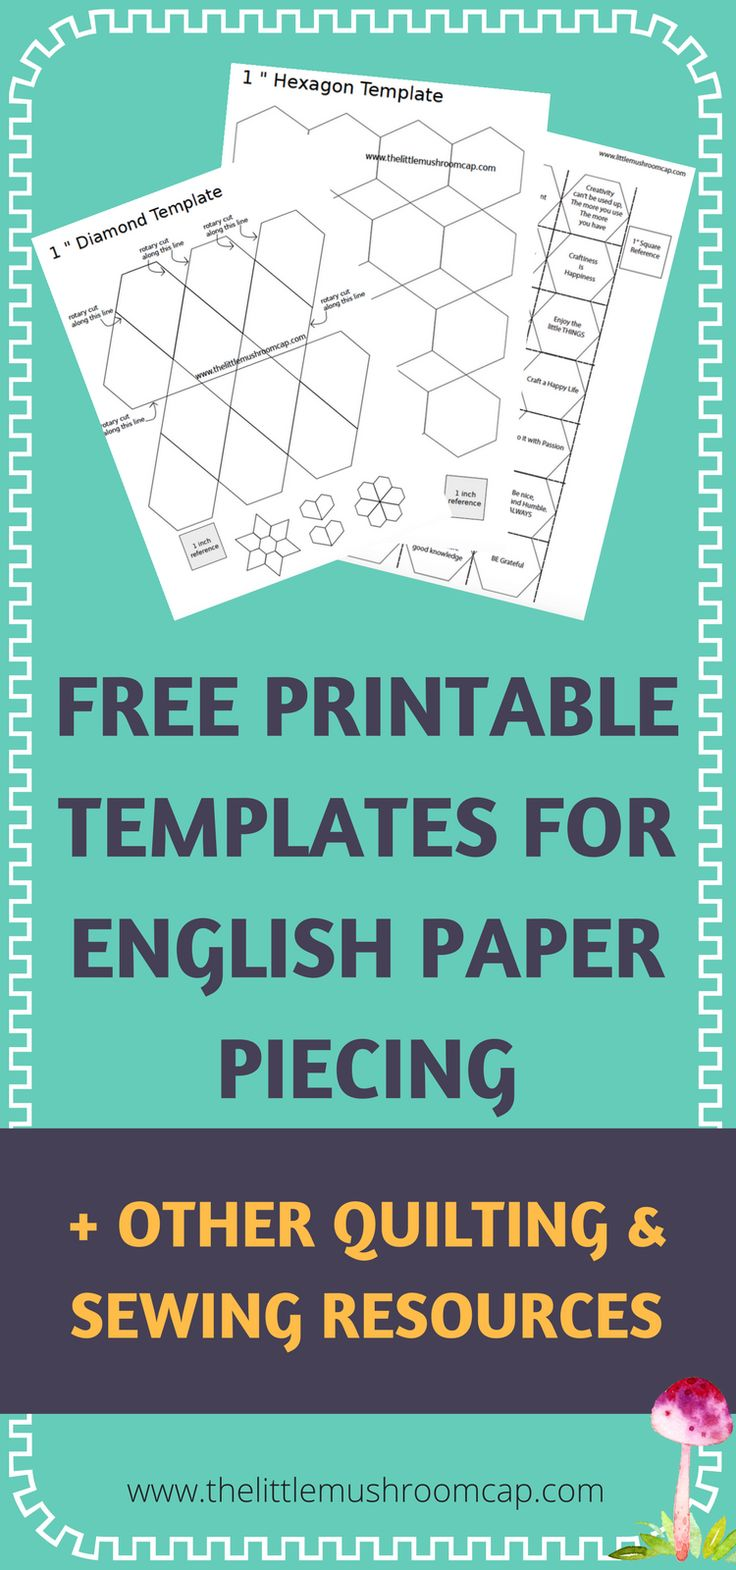 1700 best images about english paper piecing on pinterest for Hexagon templates for quilting free